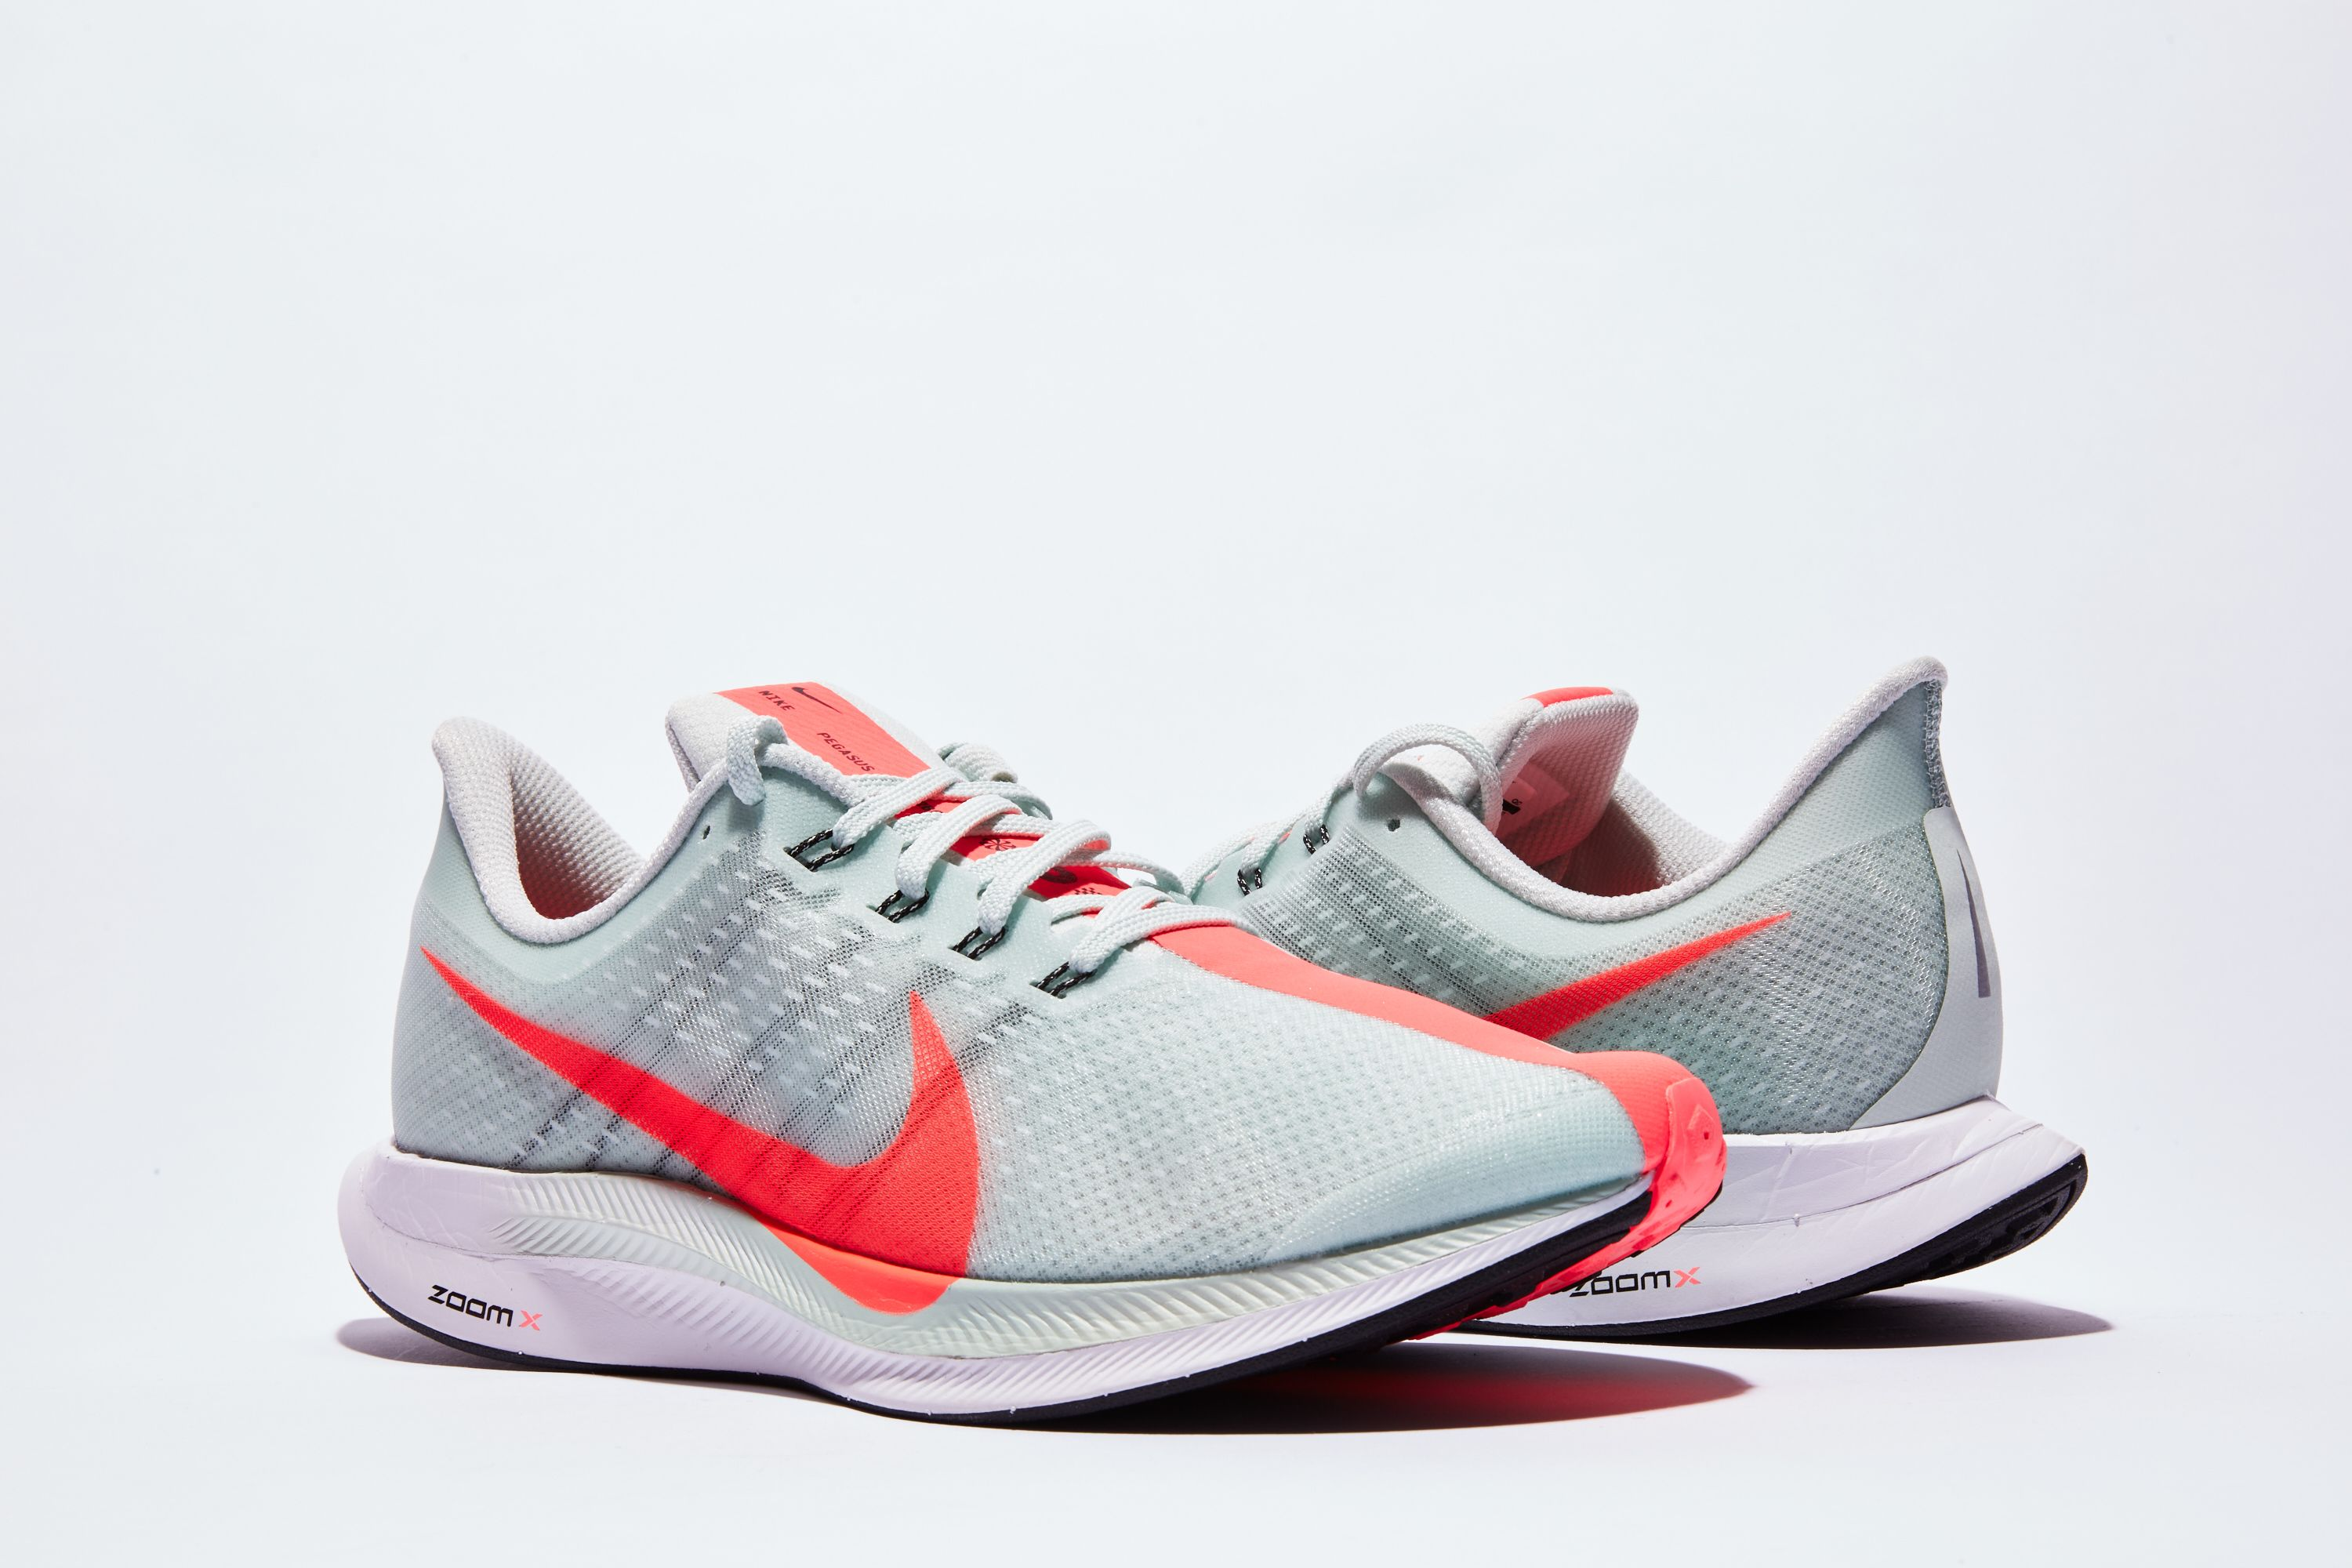 Nike Zoom Pegasus 35 Turbo - Running Shoes for Speed c11f879edb